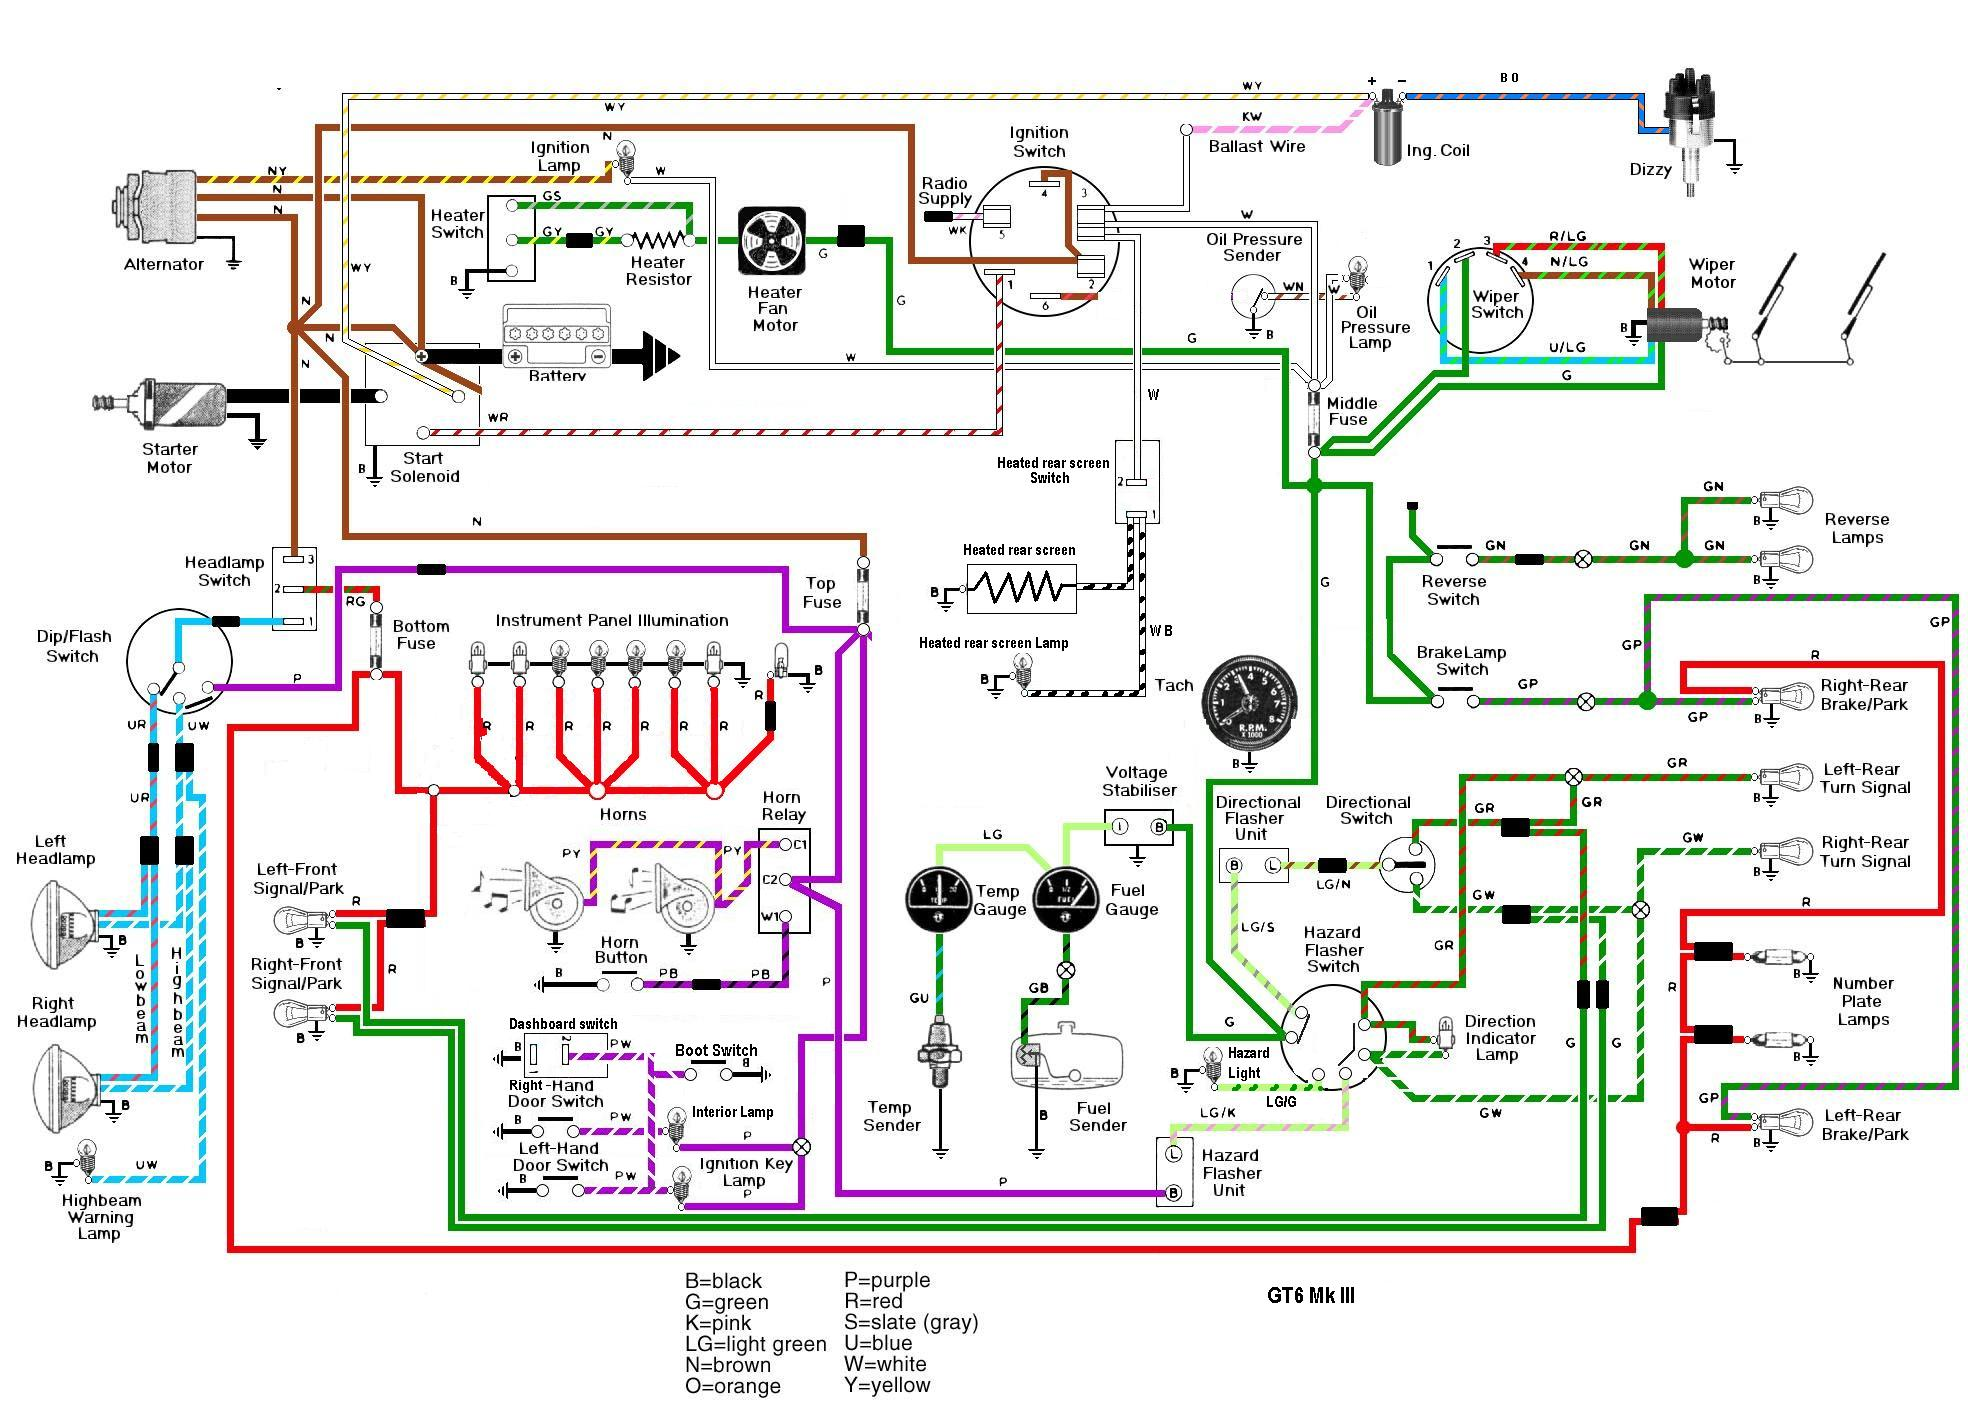 Wiring Schematics And Diagrams Triumph Spitfire Gt6 Herald Jeep Cj5 Turn Signal Diagram This